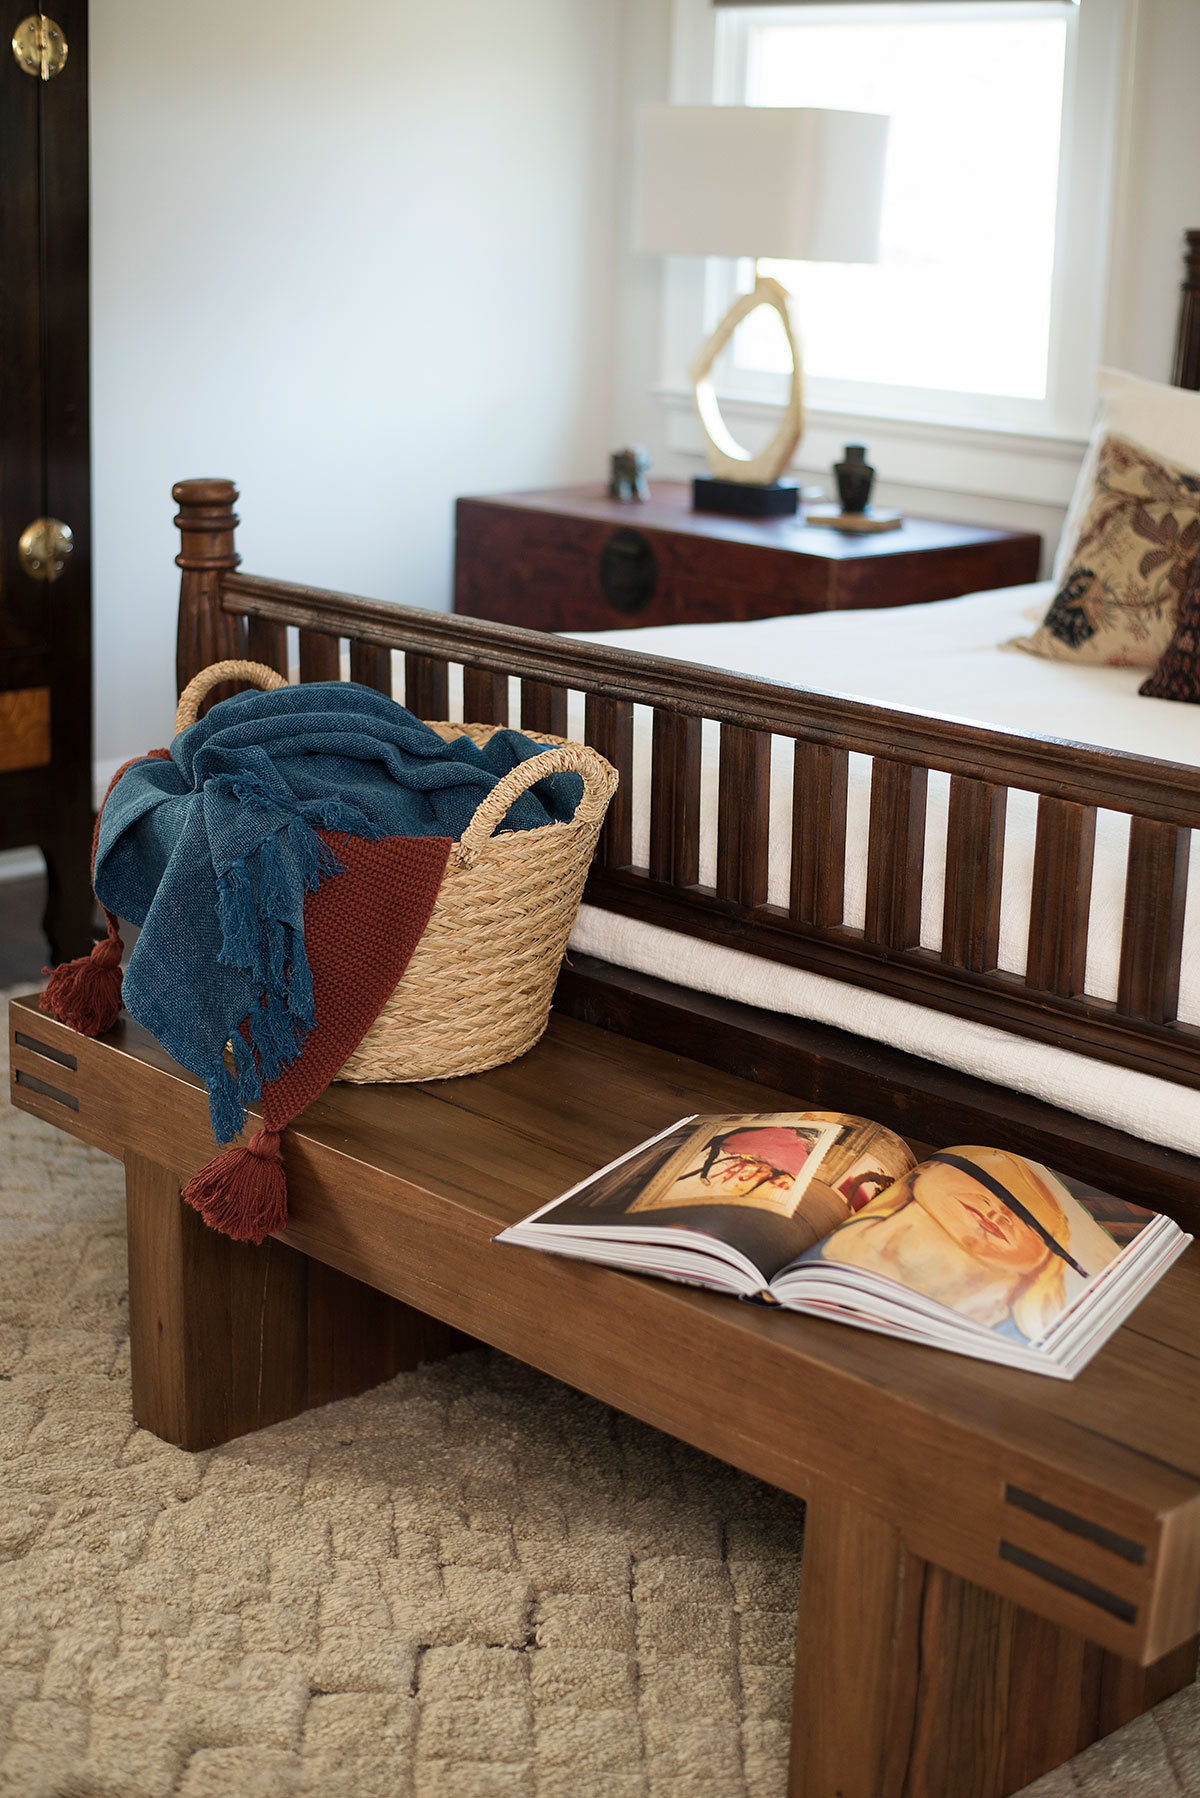 Wood bench at foot of bed in master bedroom